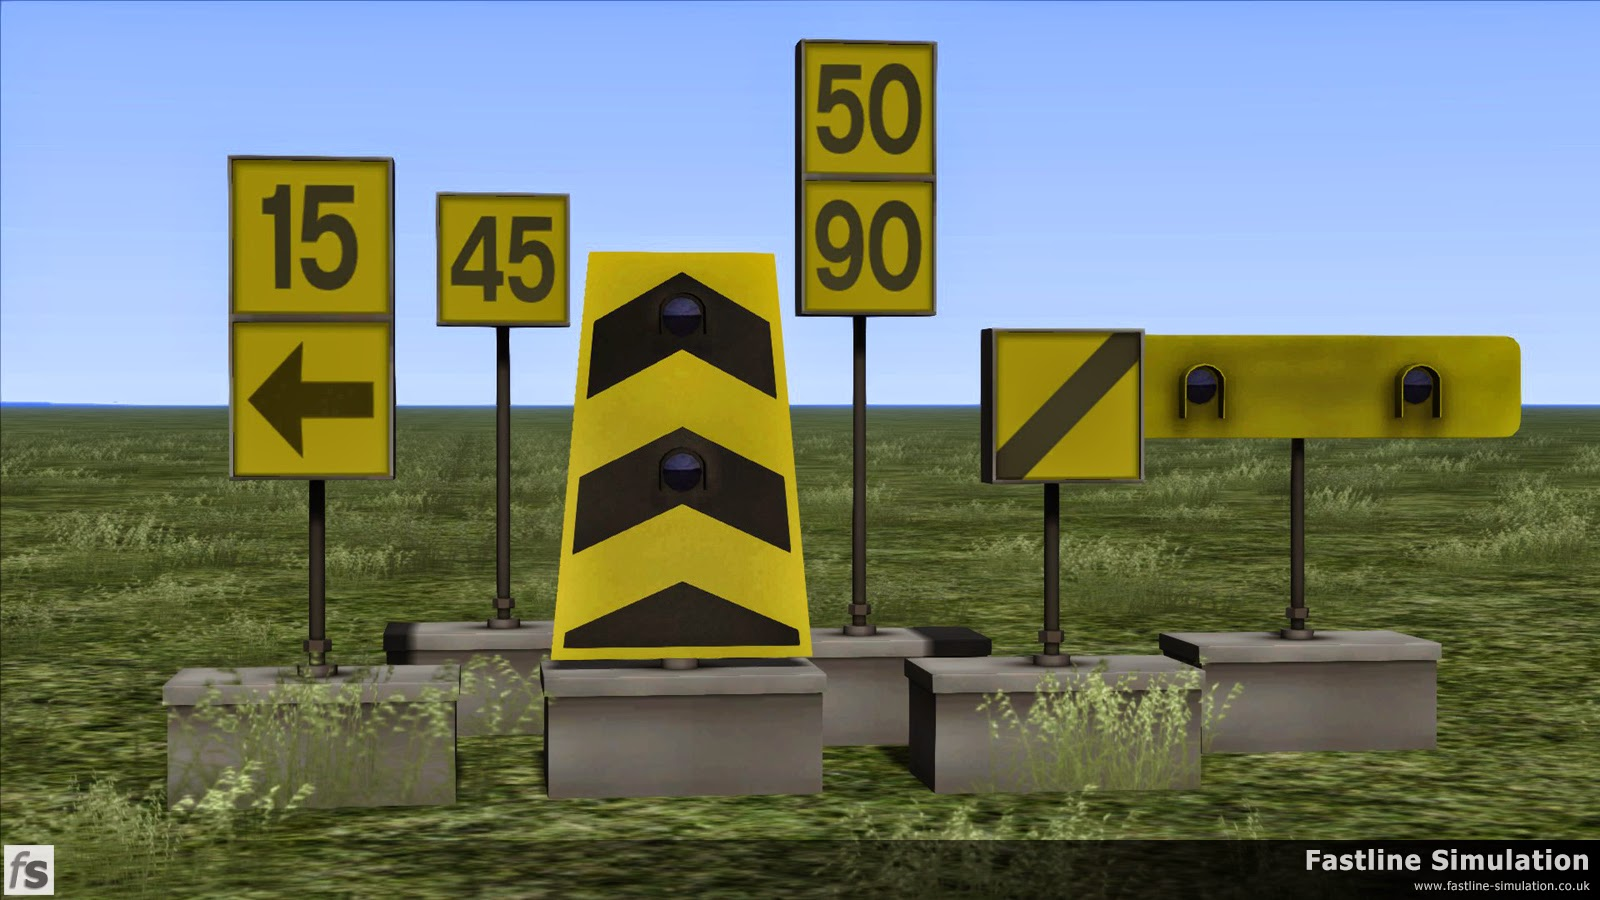 Fastline Simulation: A selection of early 1990's battery powered temporary speed restriction signs.